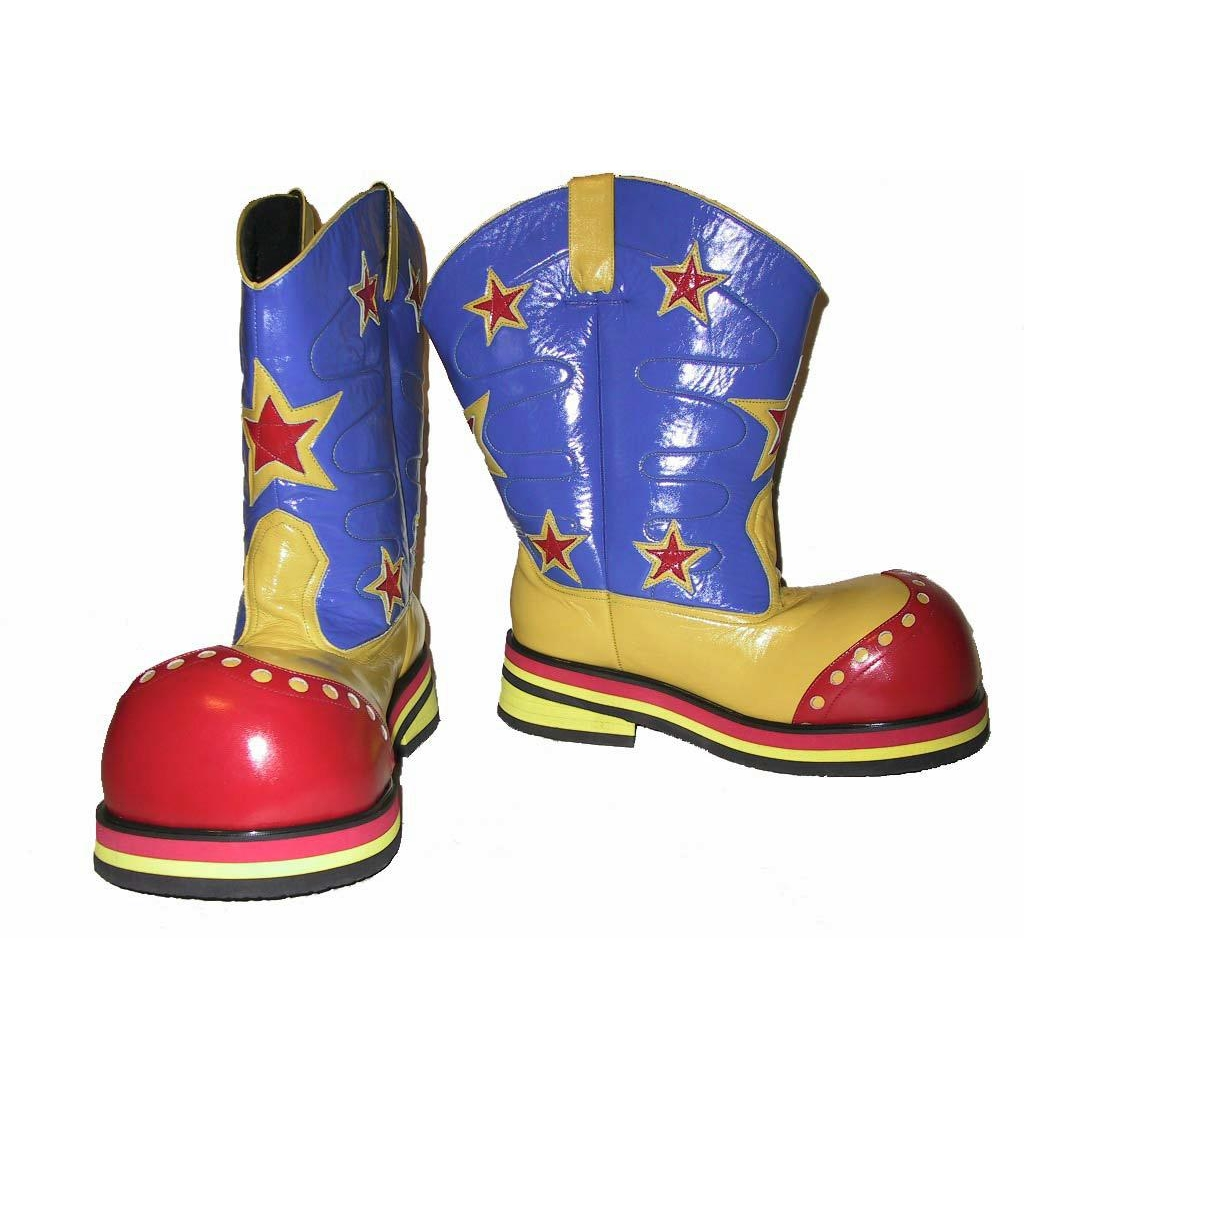 Clown Boots Professional (Model 42)